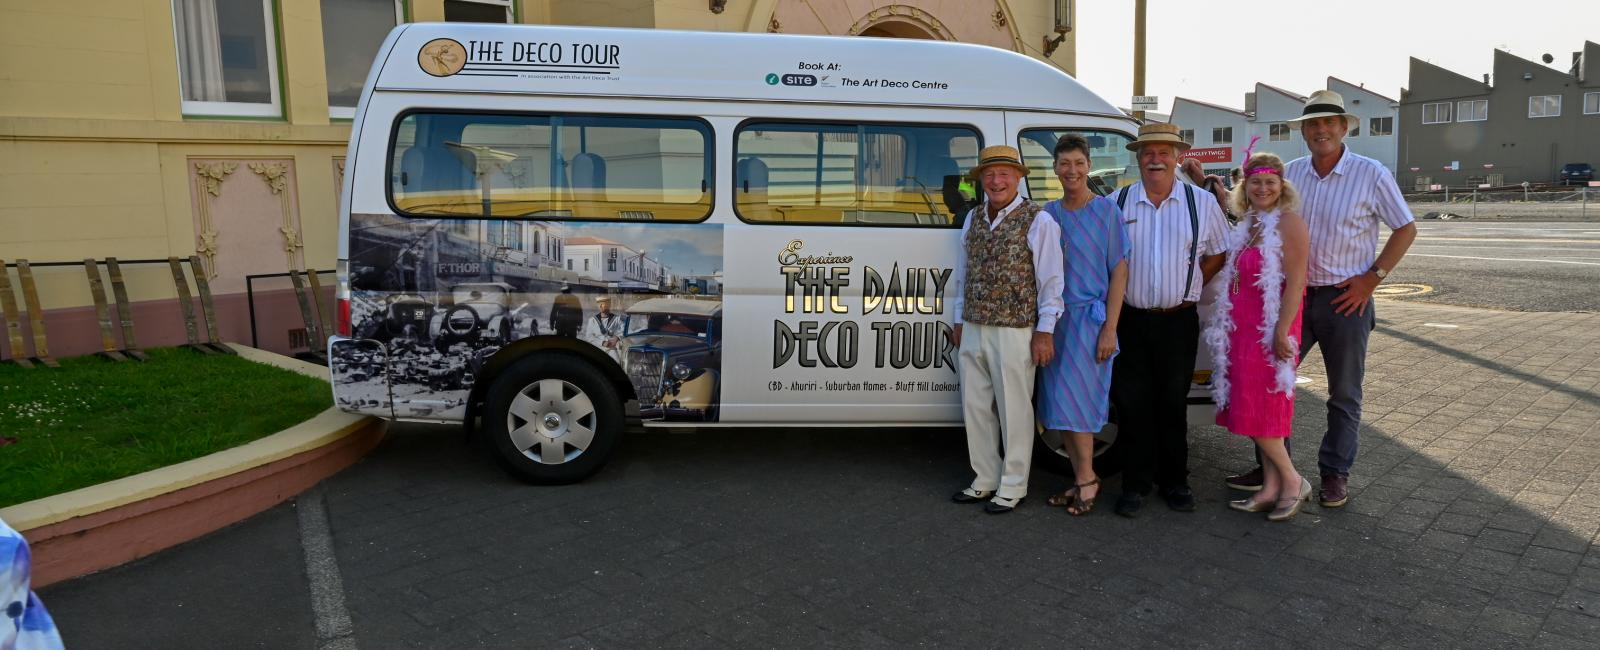 The Deco Tour